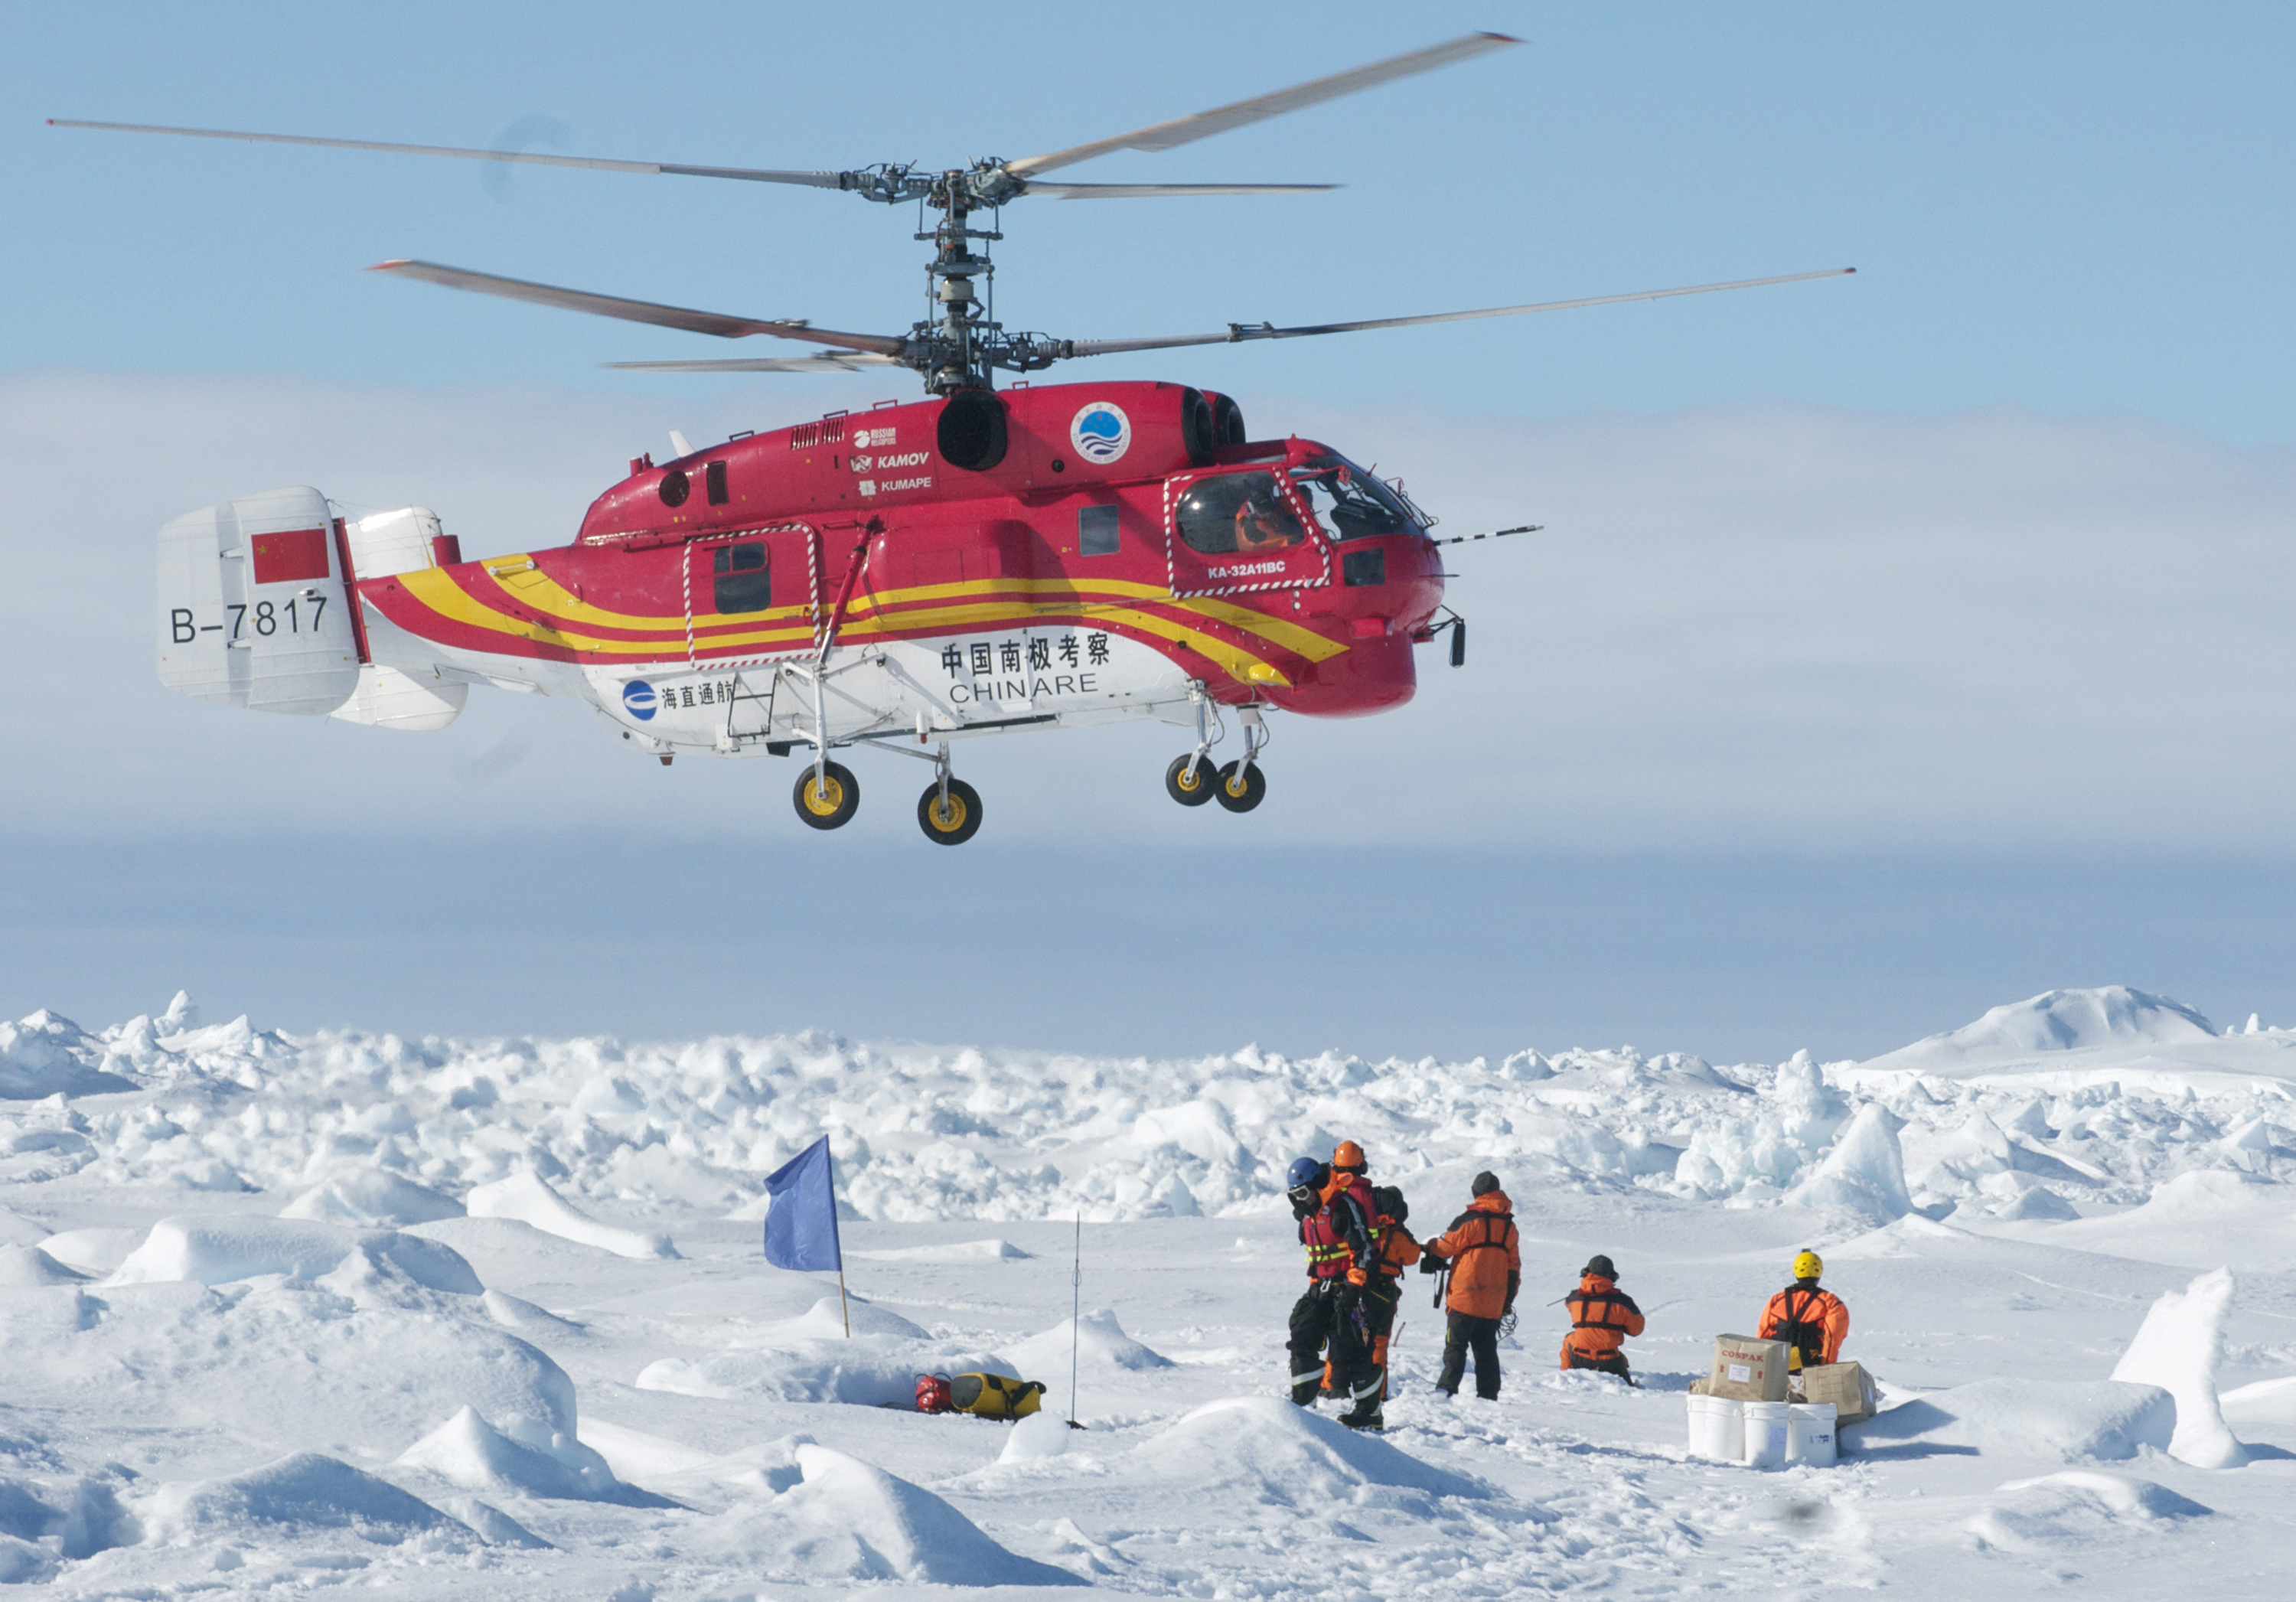 Rescue helicopter from the Chinese ship Xue Long in Antarctica. The helicopter ferried the scientists, tourists and journalists in groups of 12 to an Australian government supply ship, the Aurora Australis.  (Jessica Fitzpatrick / Australian Antarctic Division / AFP)